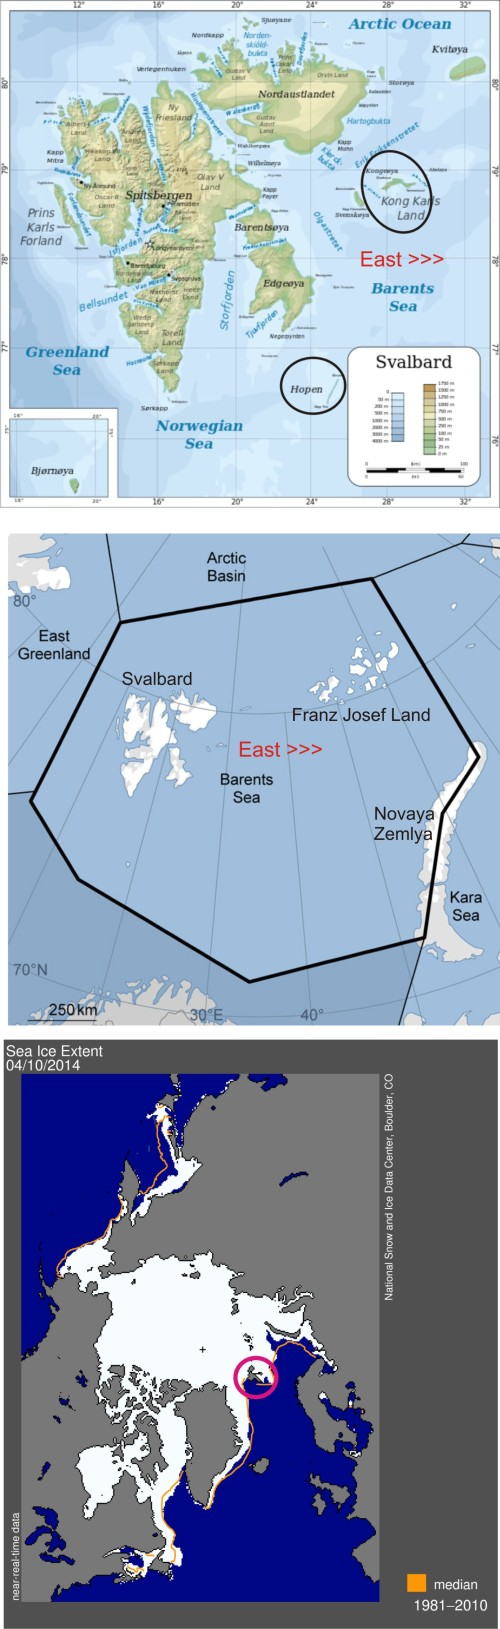 "Figure 1. Top, Primary denning areas in the Svalbard Archipelago circled (Kong Karls Land and Hopen Island); Middle, ""Barents Sea"" popular bear subpopulation boundaries, courtesy PBSG; Bottom, Sea ice extent around Svalbard (circled) as of April 10, 2014, courtesy NSIDC."